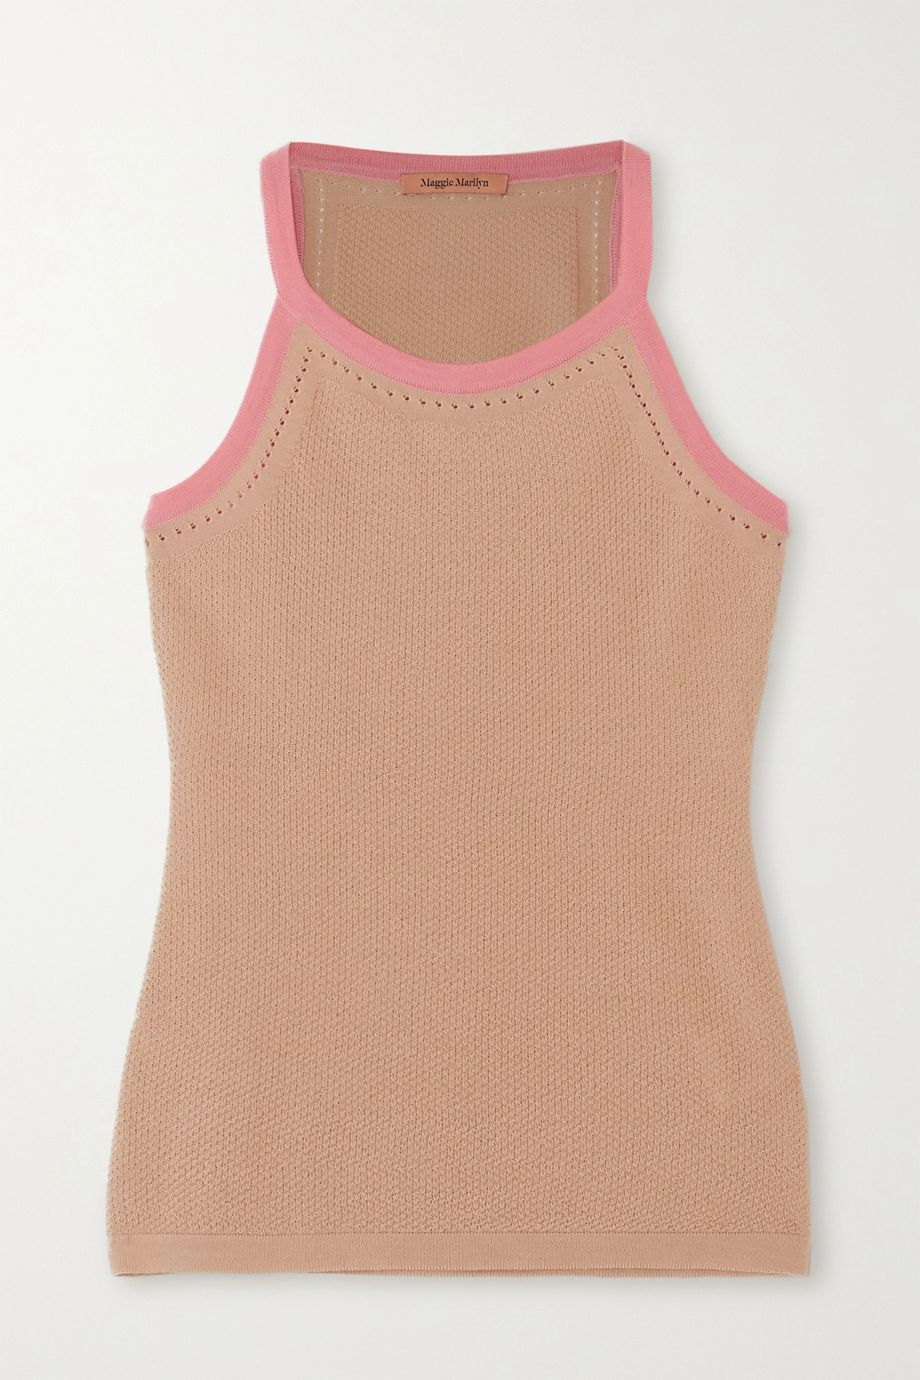 Maggie Marilyn For Old Times' Sake two-tone merino wool-blend top